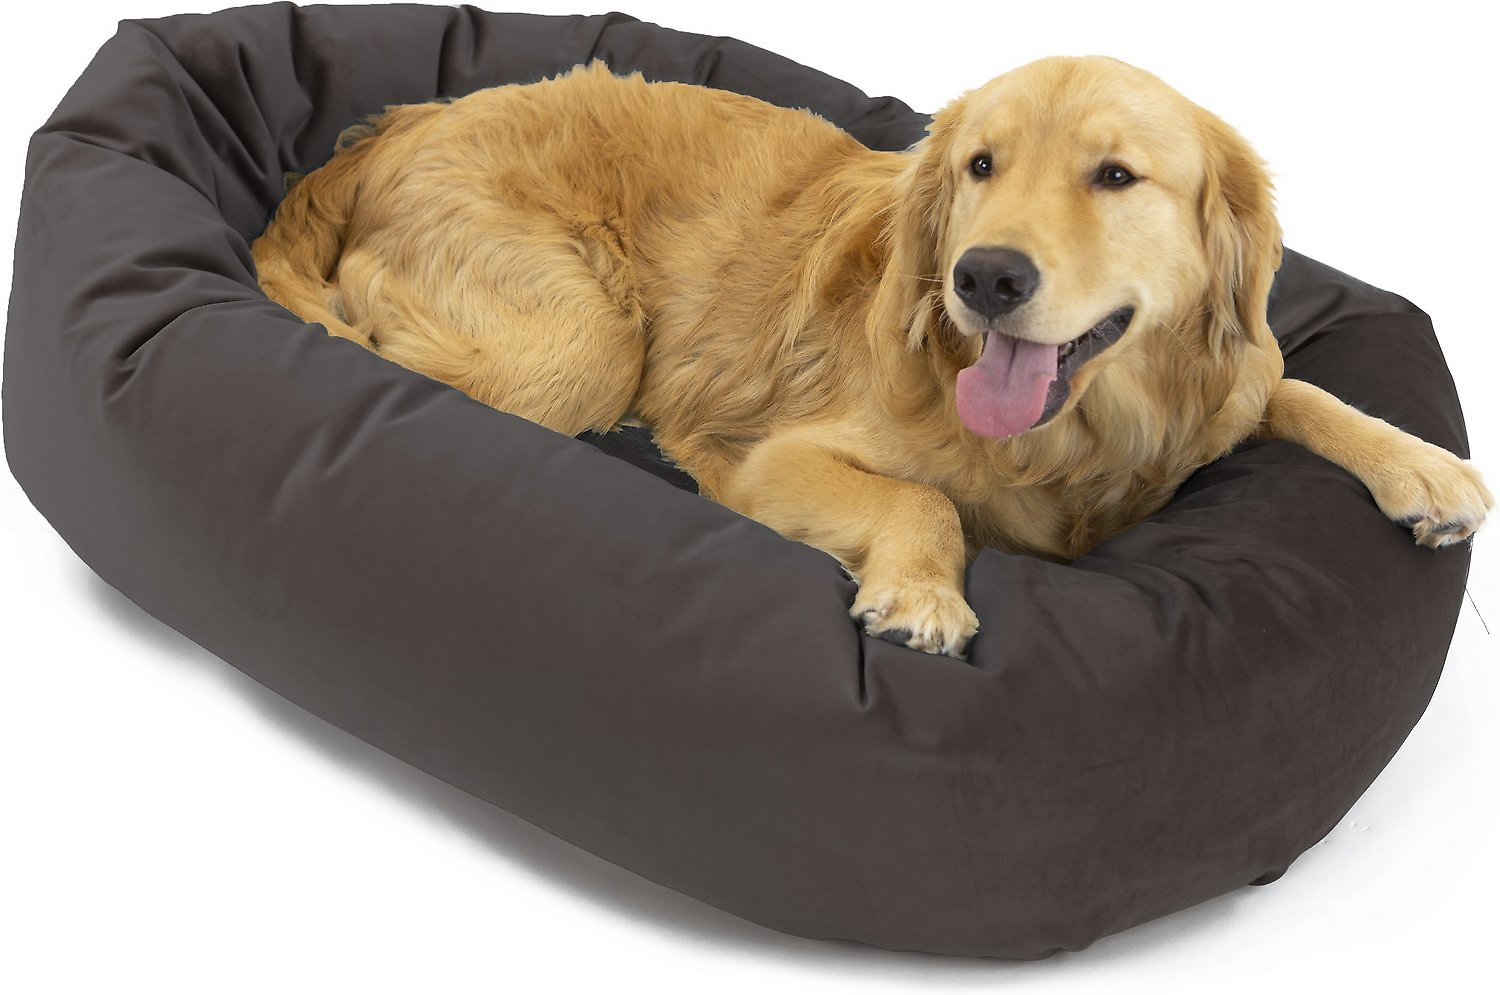 Awe Inspiring Majestic Pet Velvet Bagel Dog Bed Coal Large Chewy Com Machost Co Dining Chair Design Ideas Machostcouk